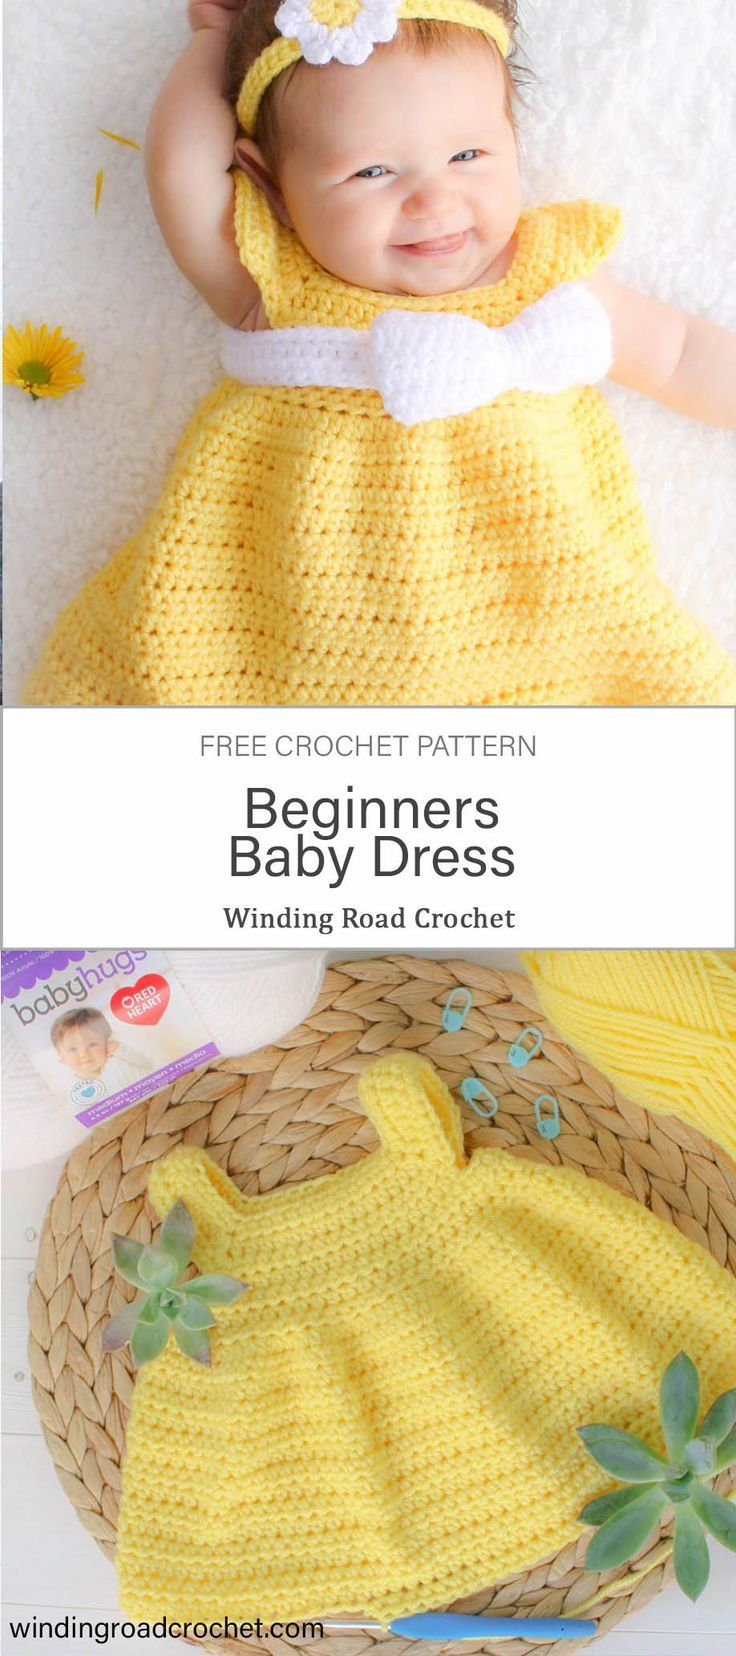 Simply Spring Baby Dress: 6 - 18 Months - Winding Road Crochet